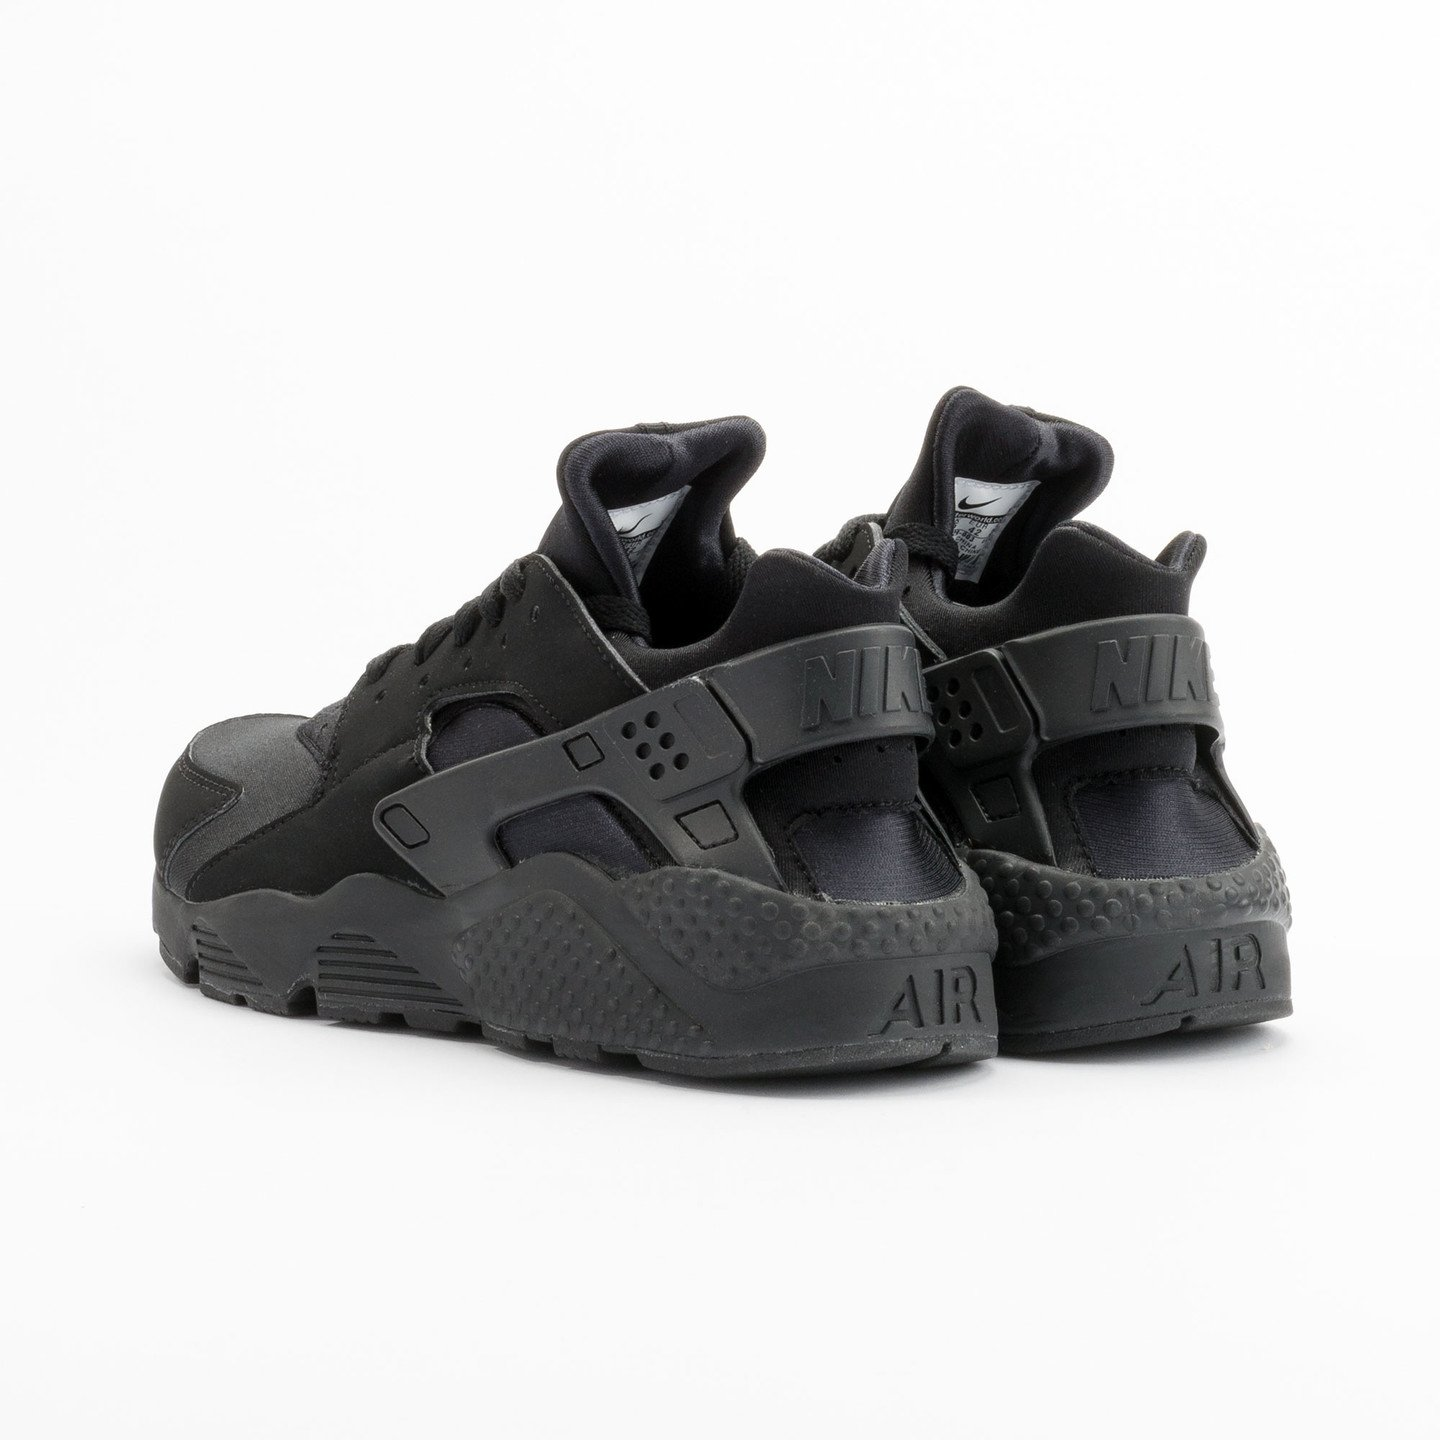 Nike Air Huarache Black/Black-White 318429-003-40.5